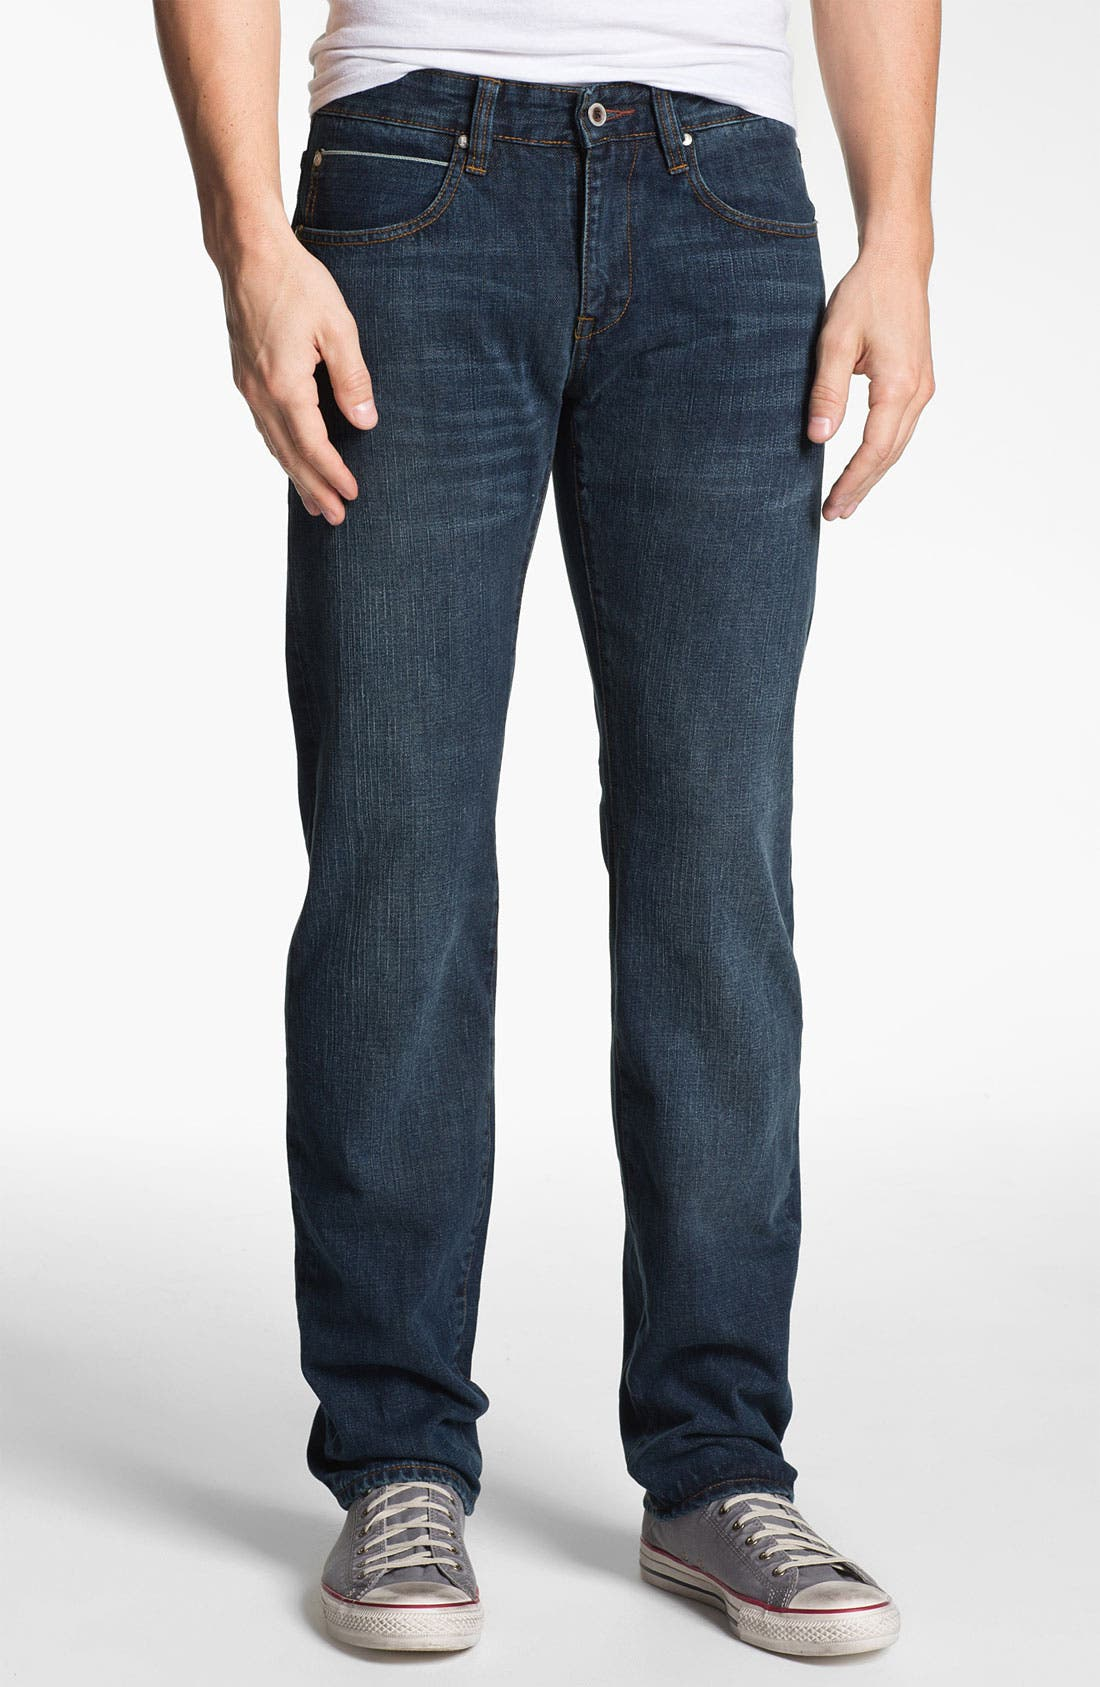 Alternate Image 1 Selected - ROAD 'Selvedge' Straight Fit Jeans (Dark Wash)